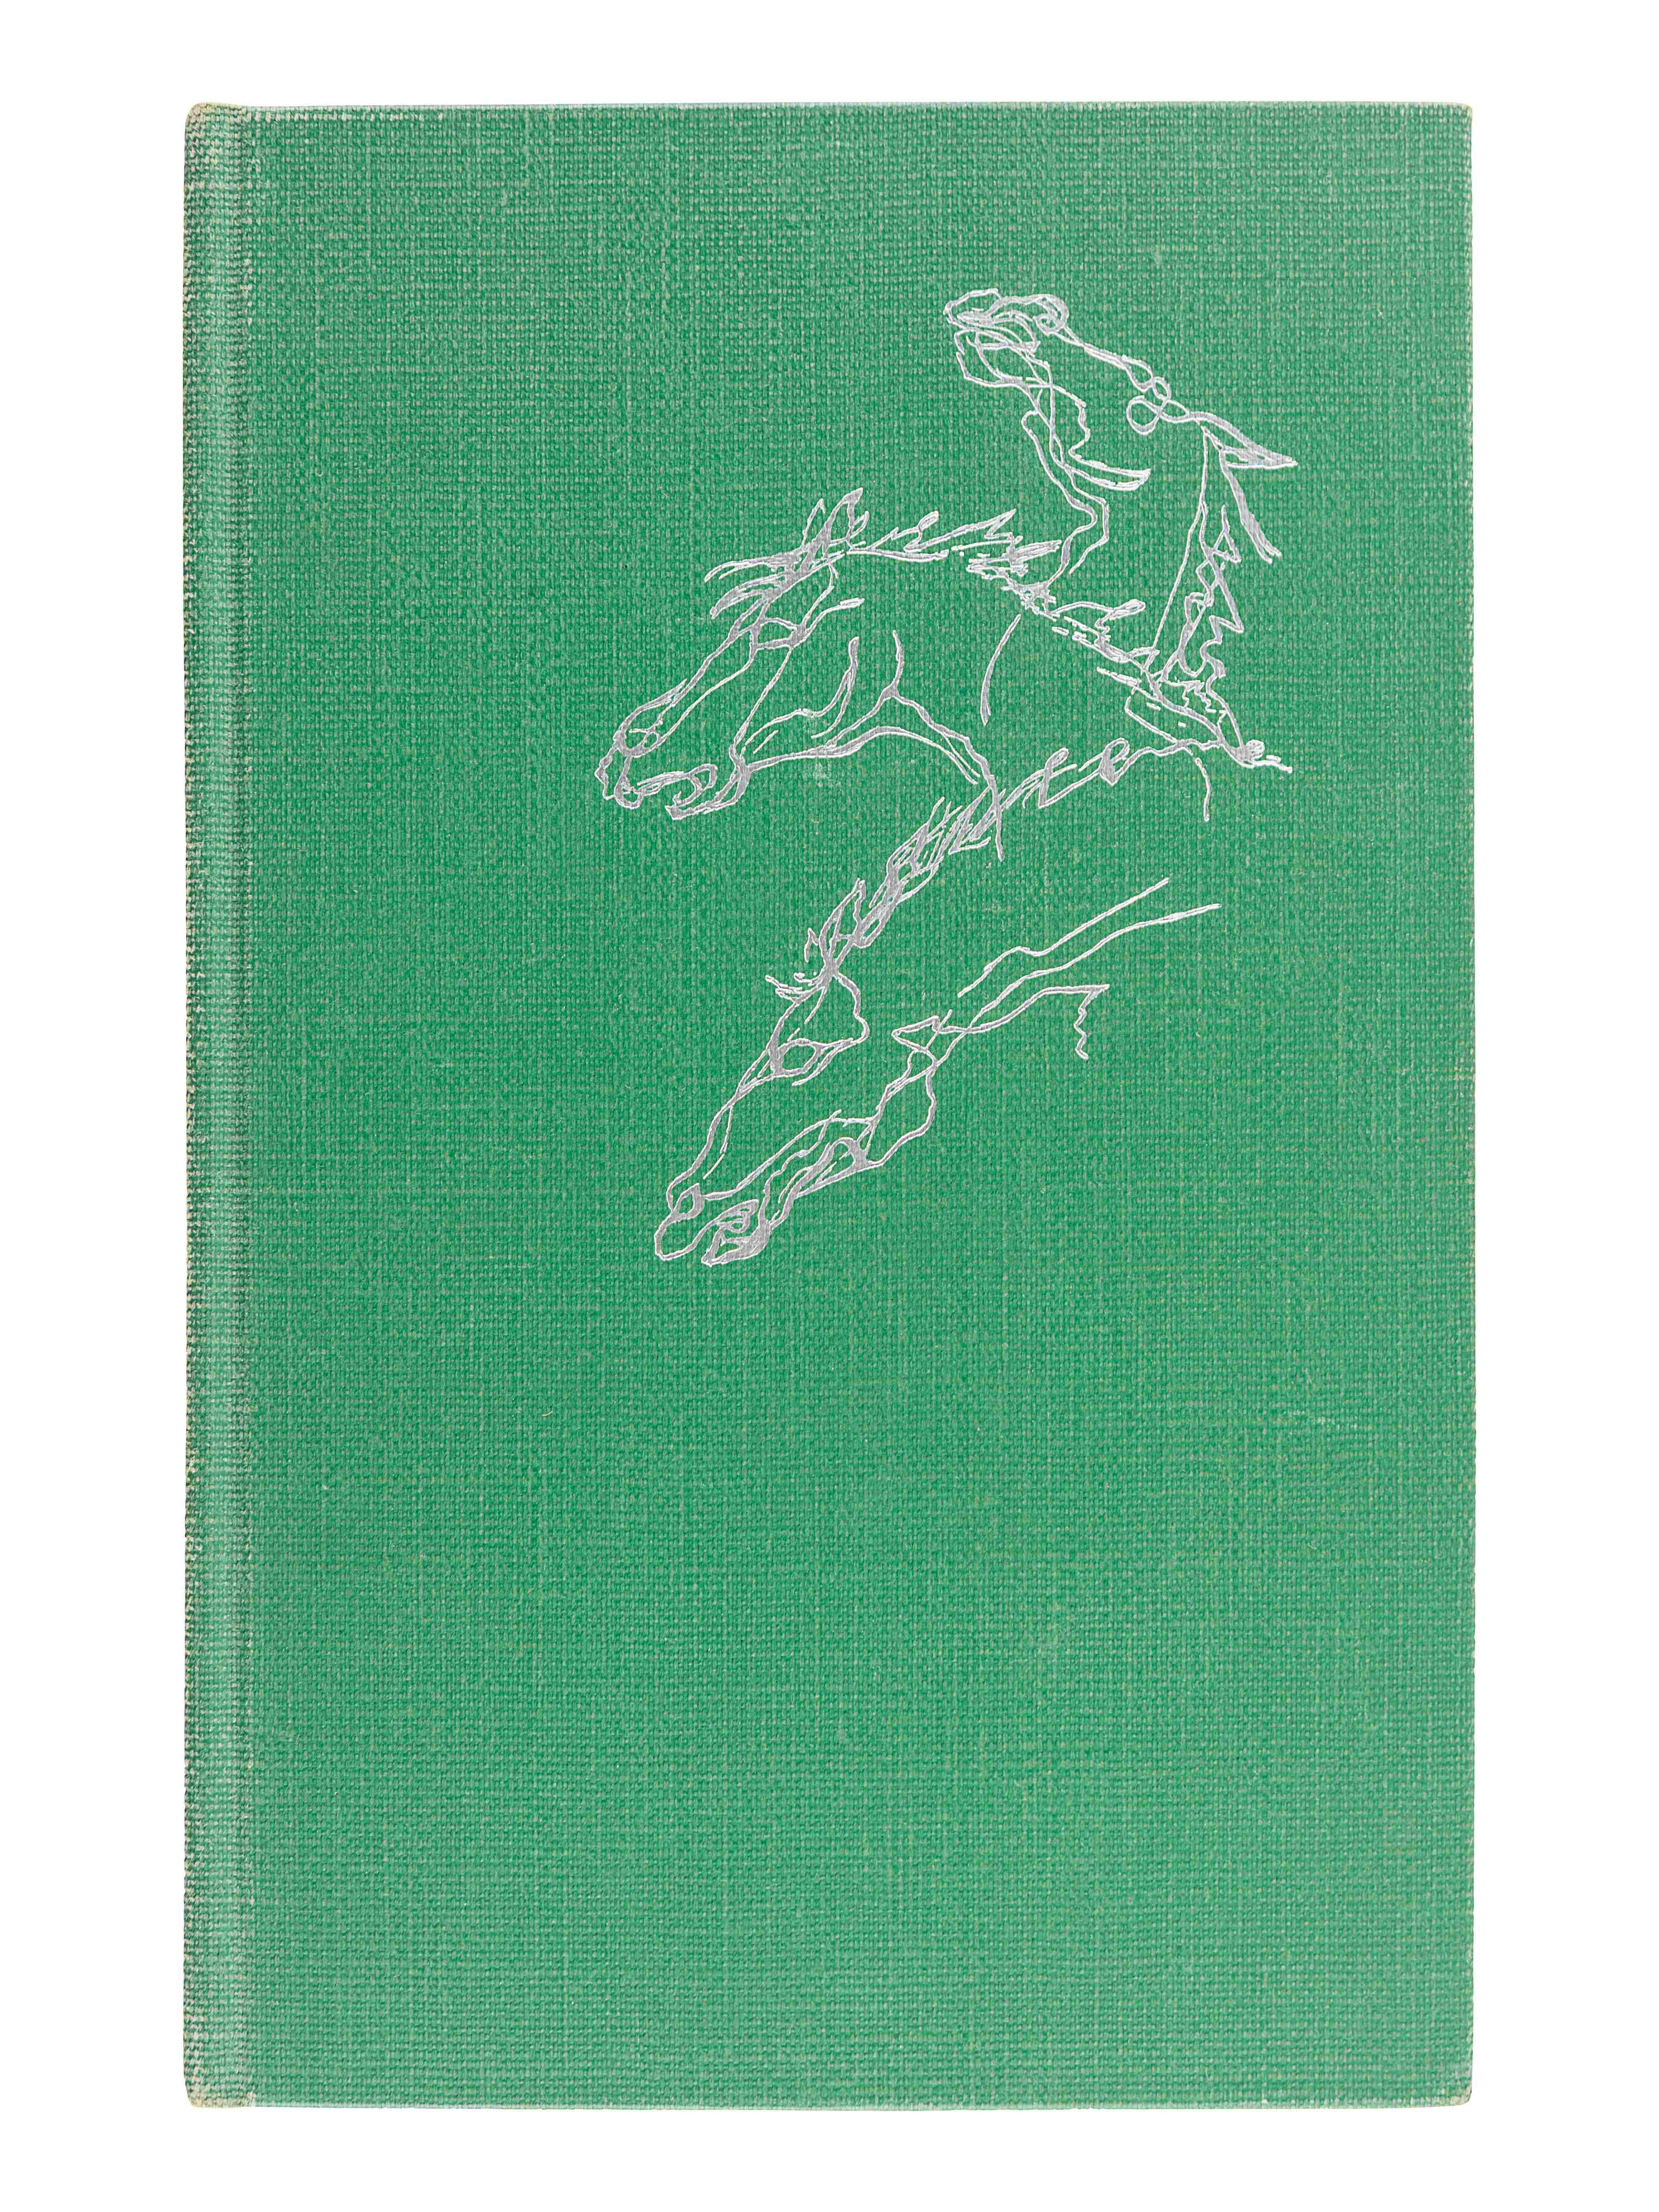 FAULKNER, William (1897-1962). Notes on a Horse Thief. Greenville, MS: The Levee Press, 1950. - Image 2 of 5